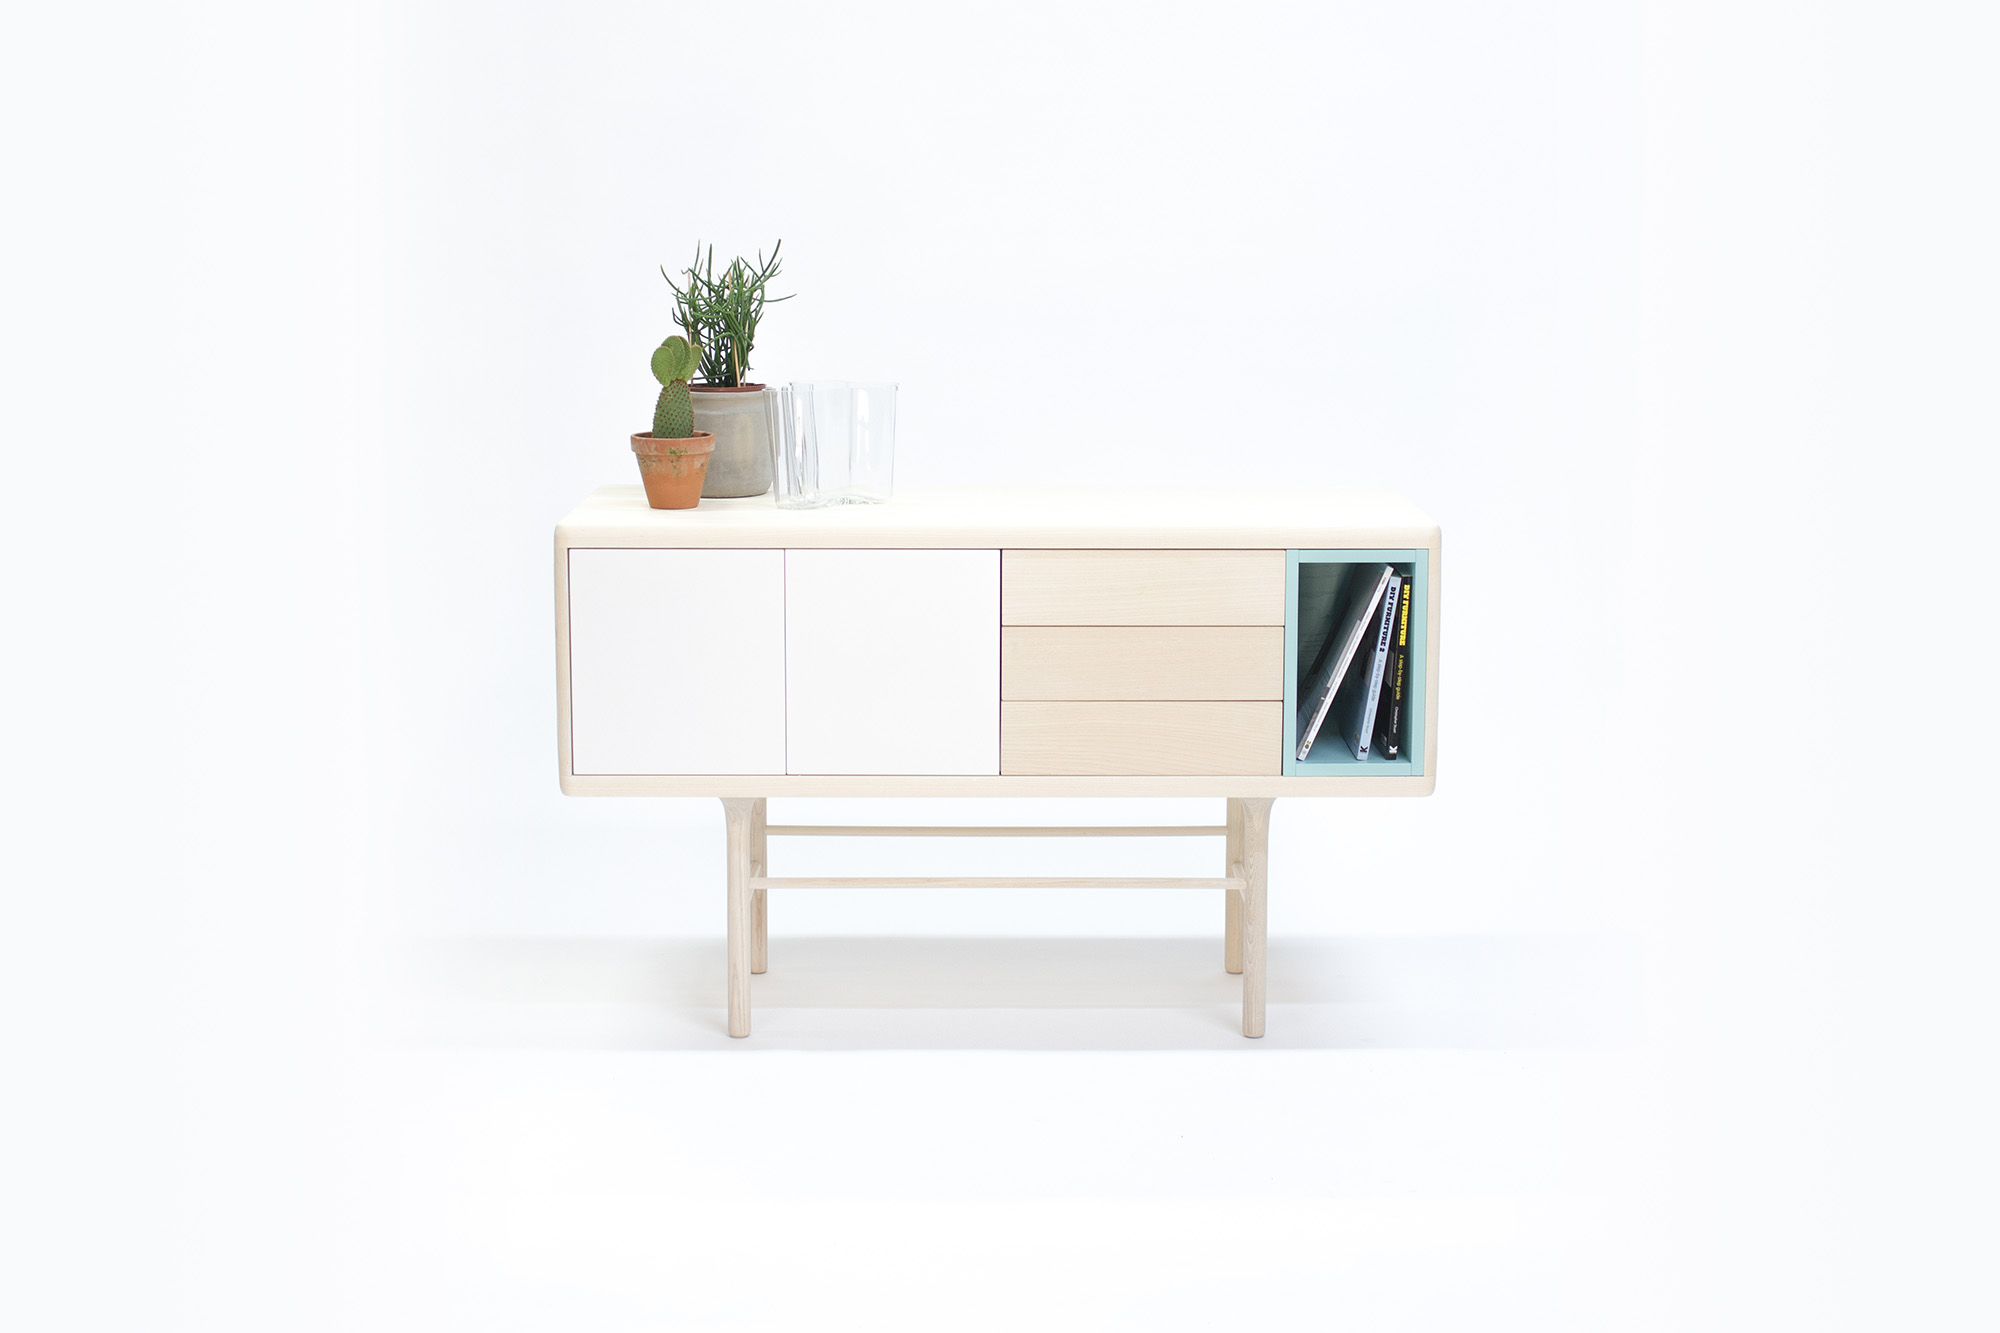 Minimal scandinavian furniture by designer carlos jim nez for Home designs furniture